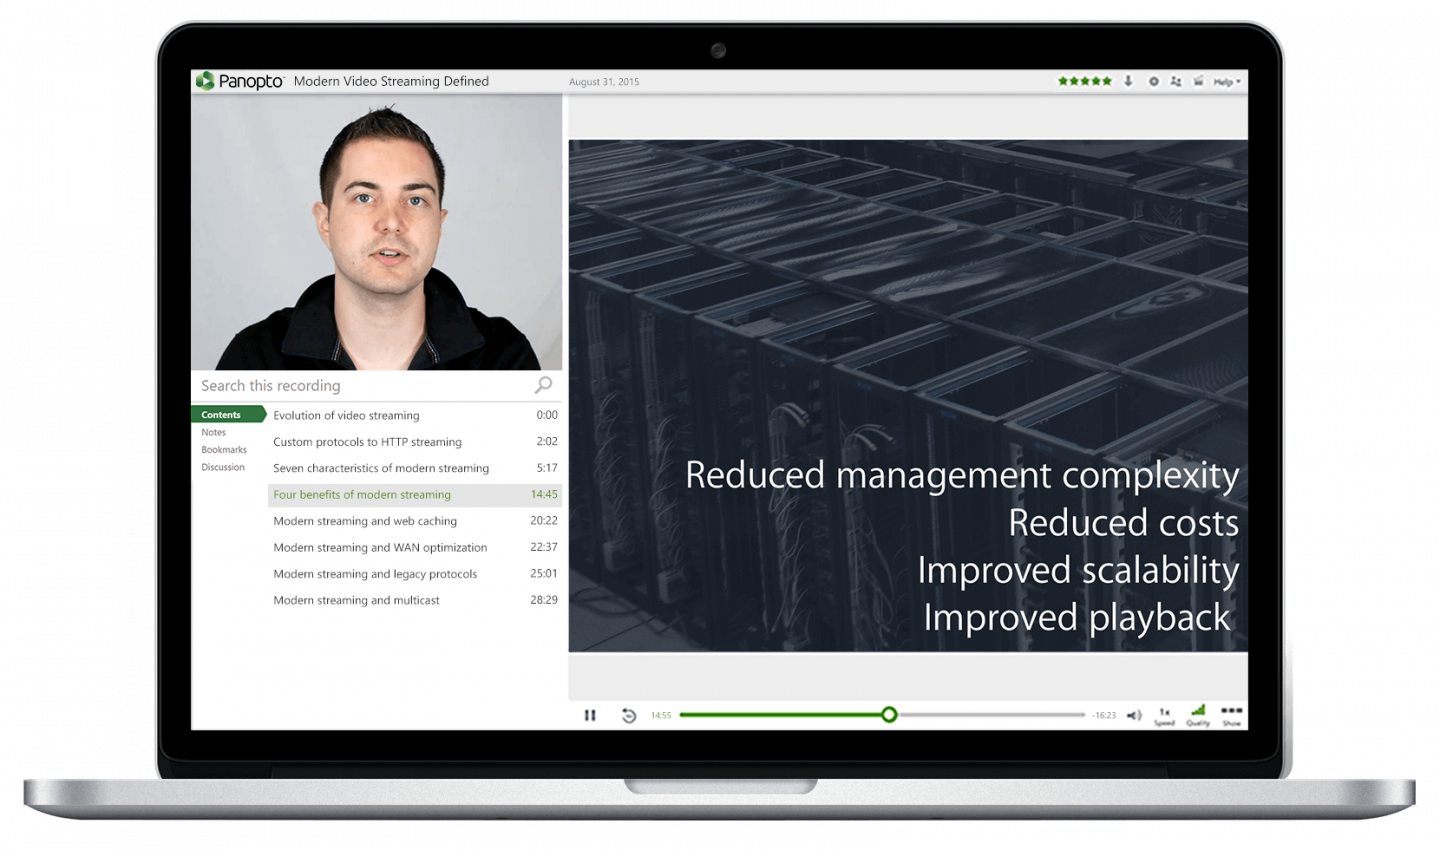 Panopto's reliable cloud video platform works when other systems fail